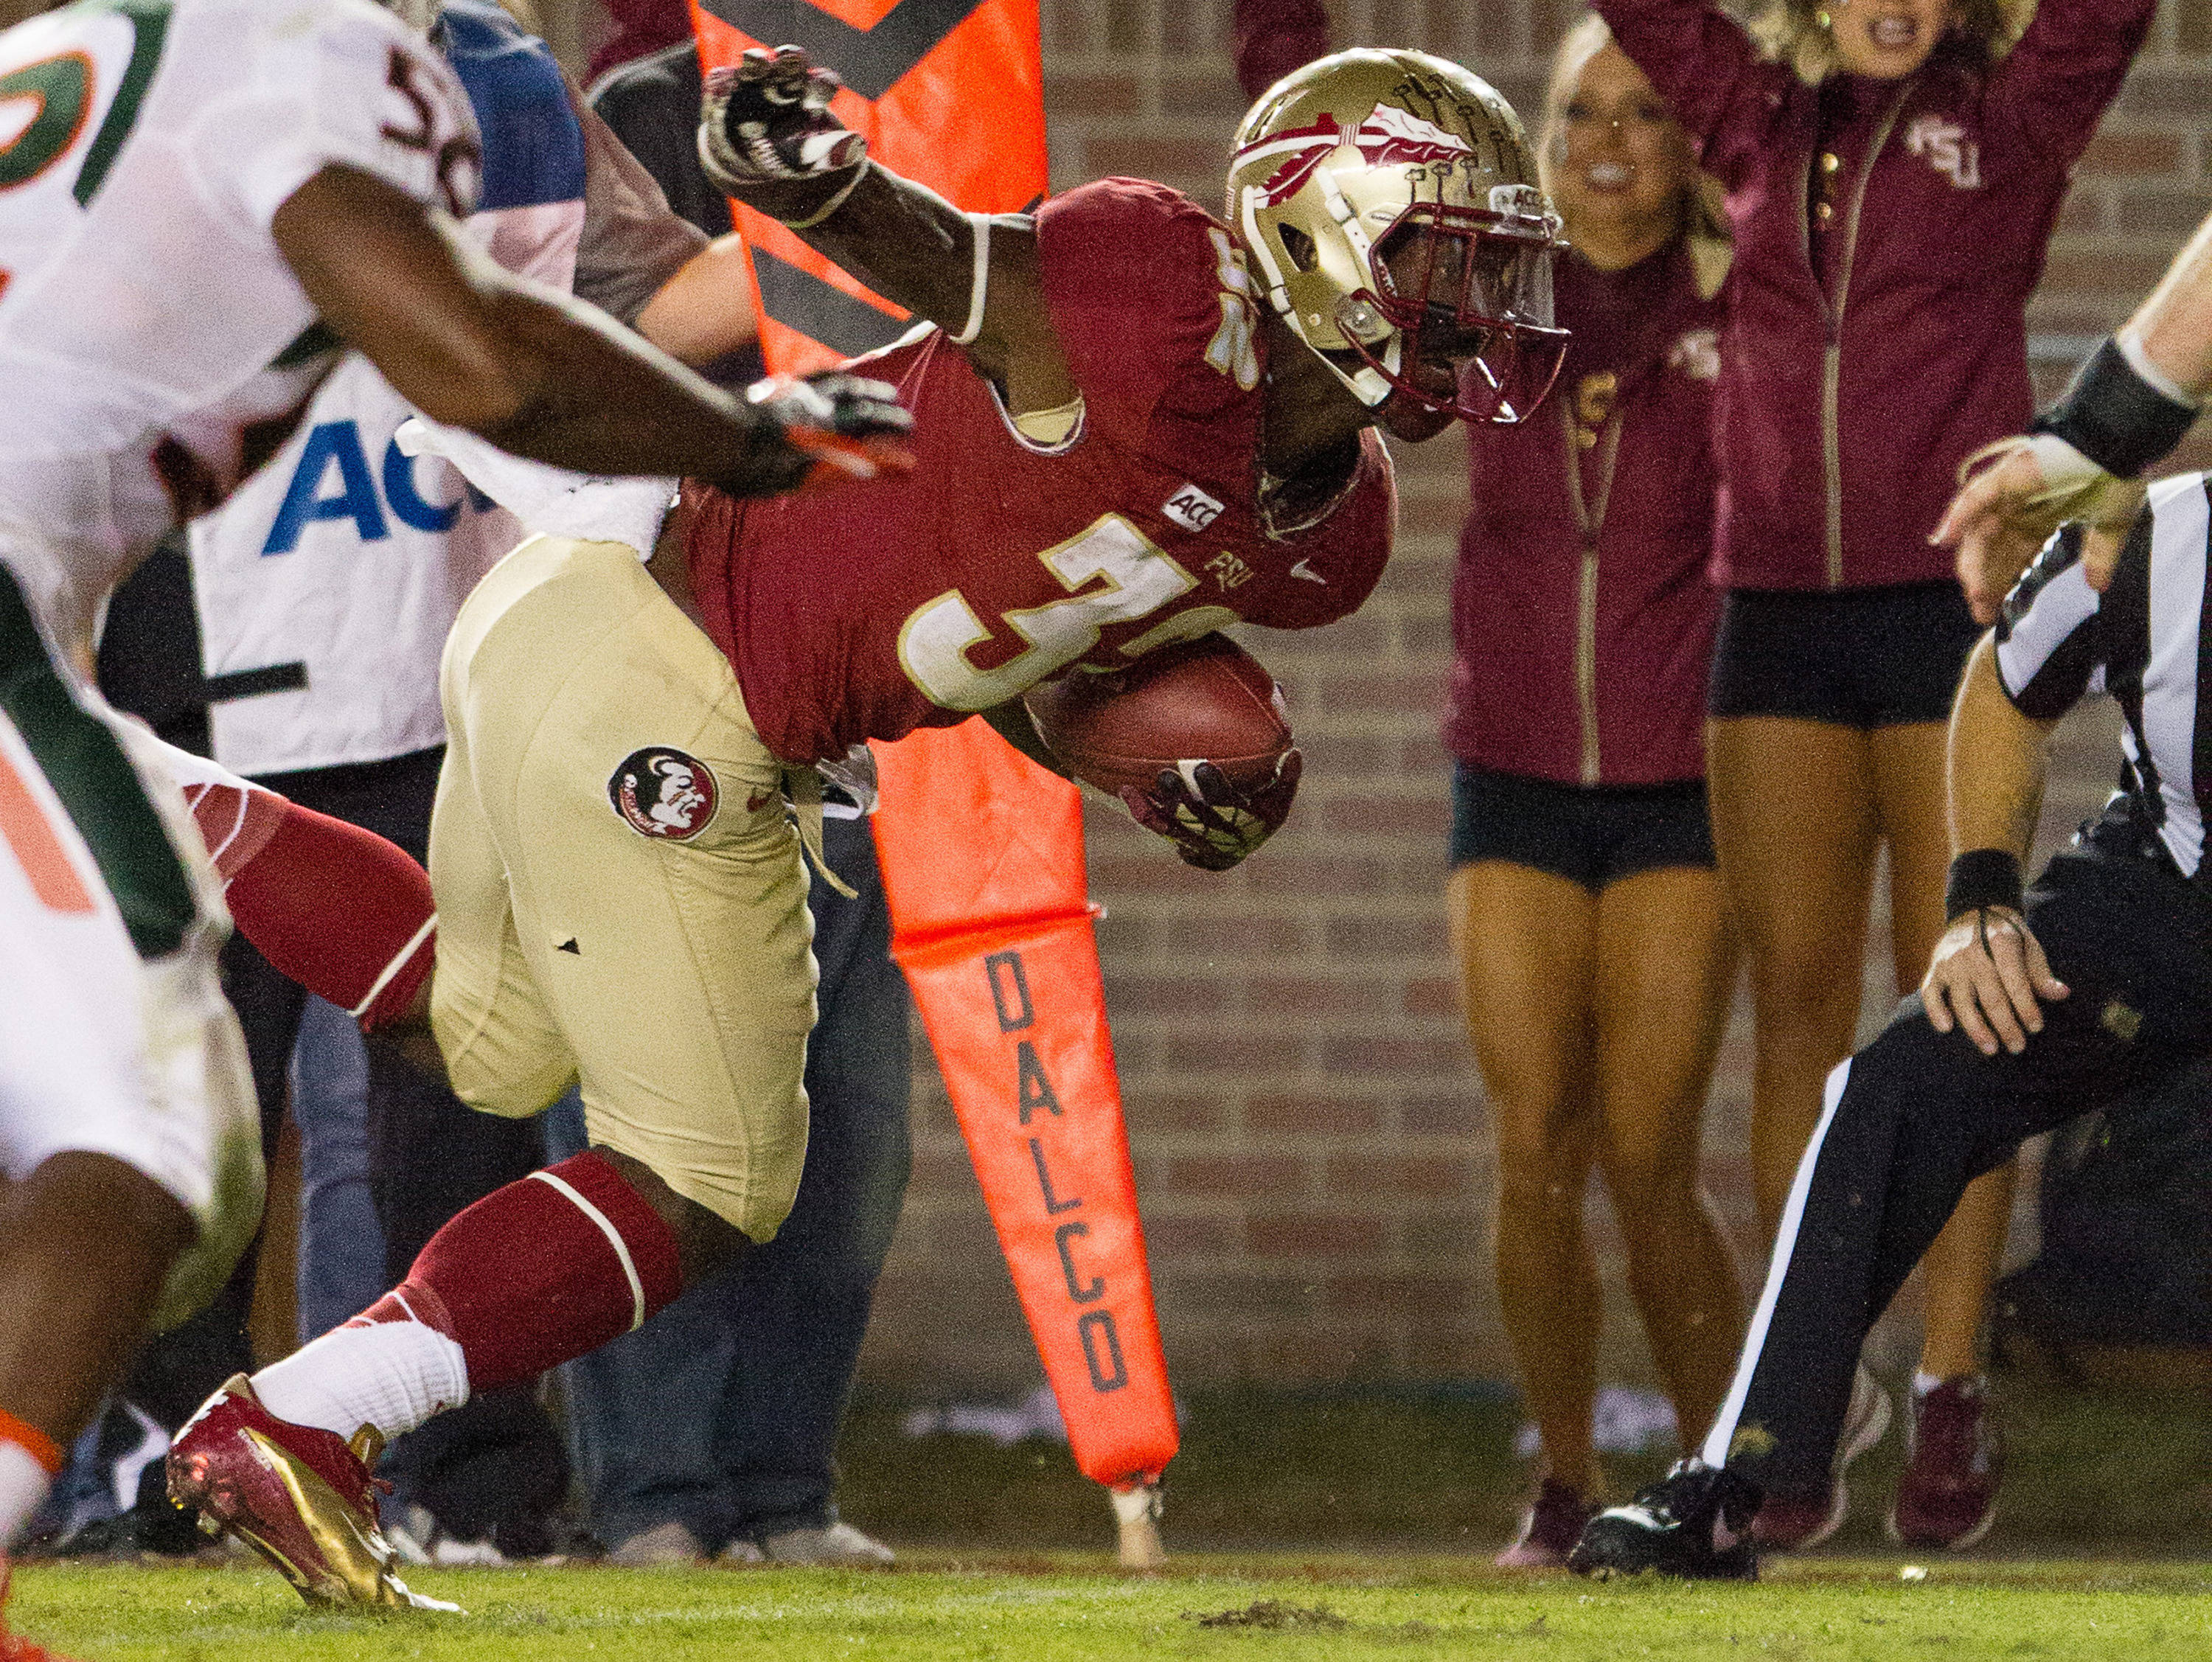 James Wilder, Jr. (32) dives towards the end zone for a touchdown during FSU football's 41-14 win over Miami on Saturday, November 2, 2013 in Tallahassee, Fla. Photo by Michael Schwarz.